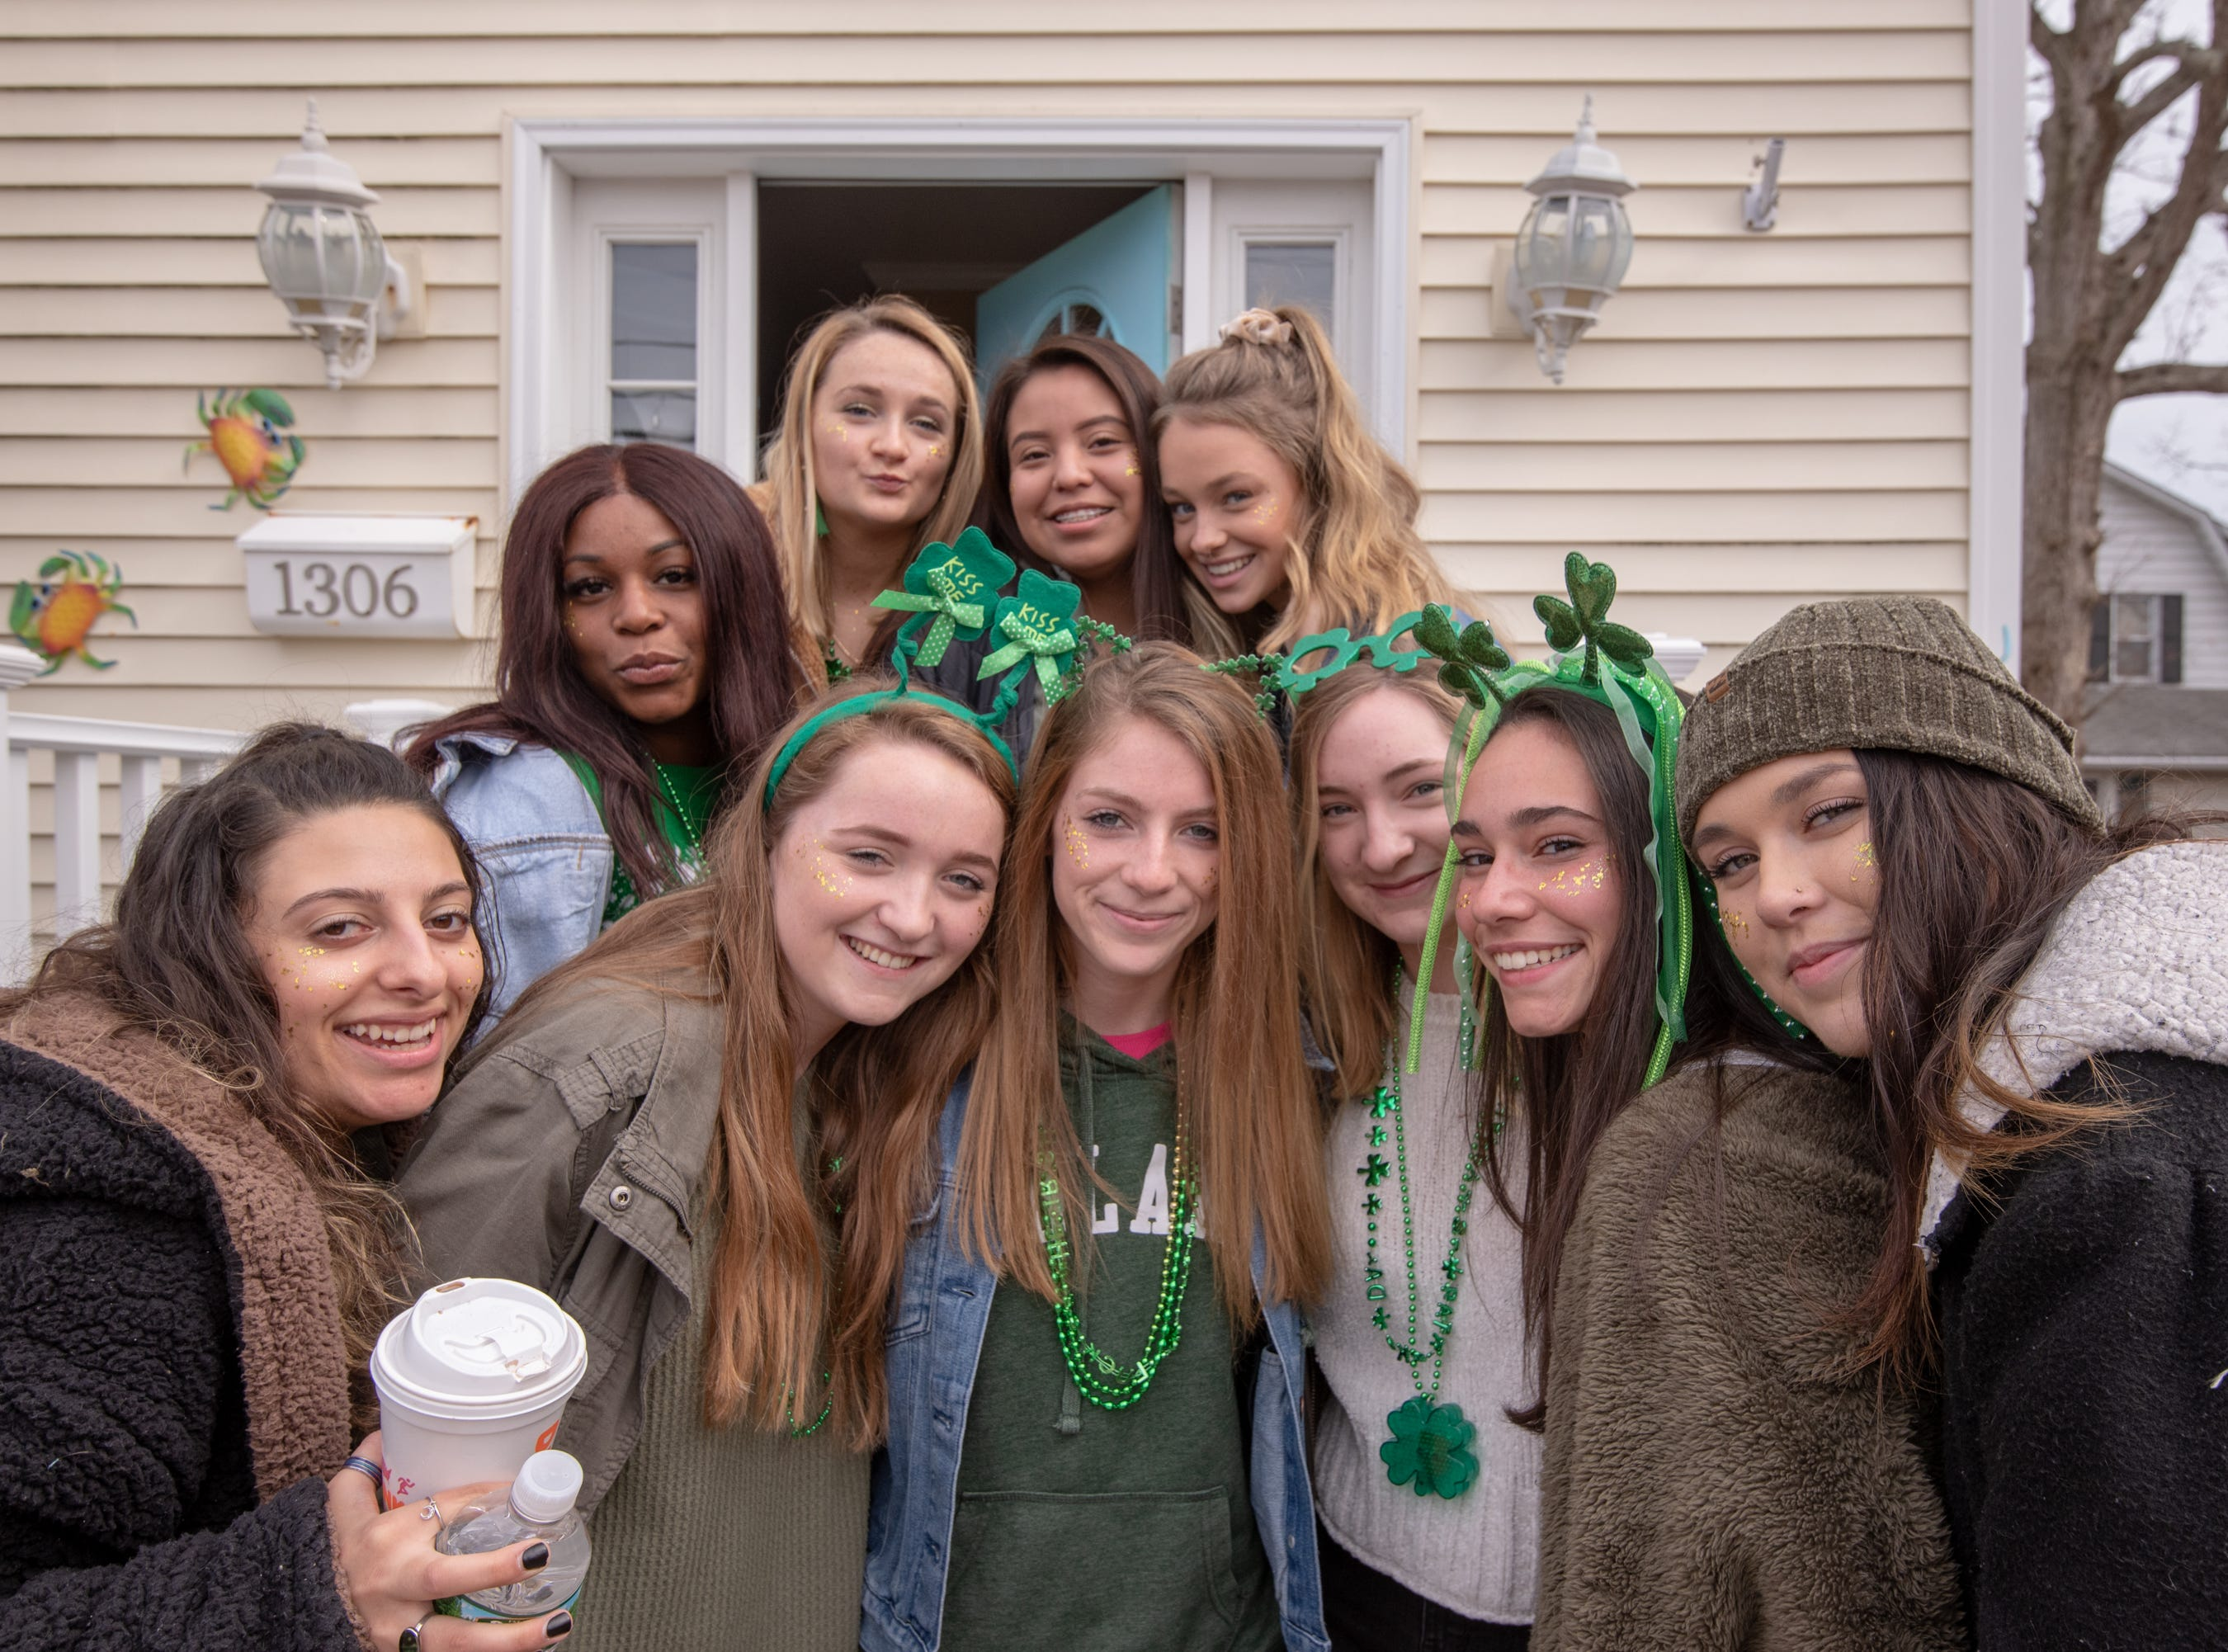 A group of young women are ready to head over to the parade. The 46th annual Belmar/Lake Como St. Patrick's Day Parade was held in Belmar on March 3, 2019.